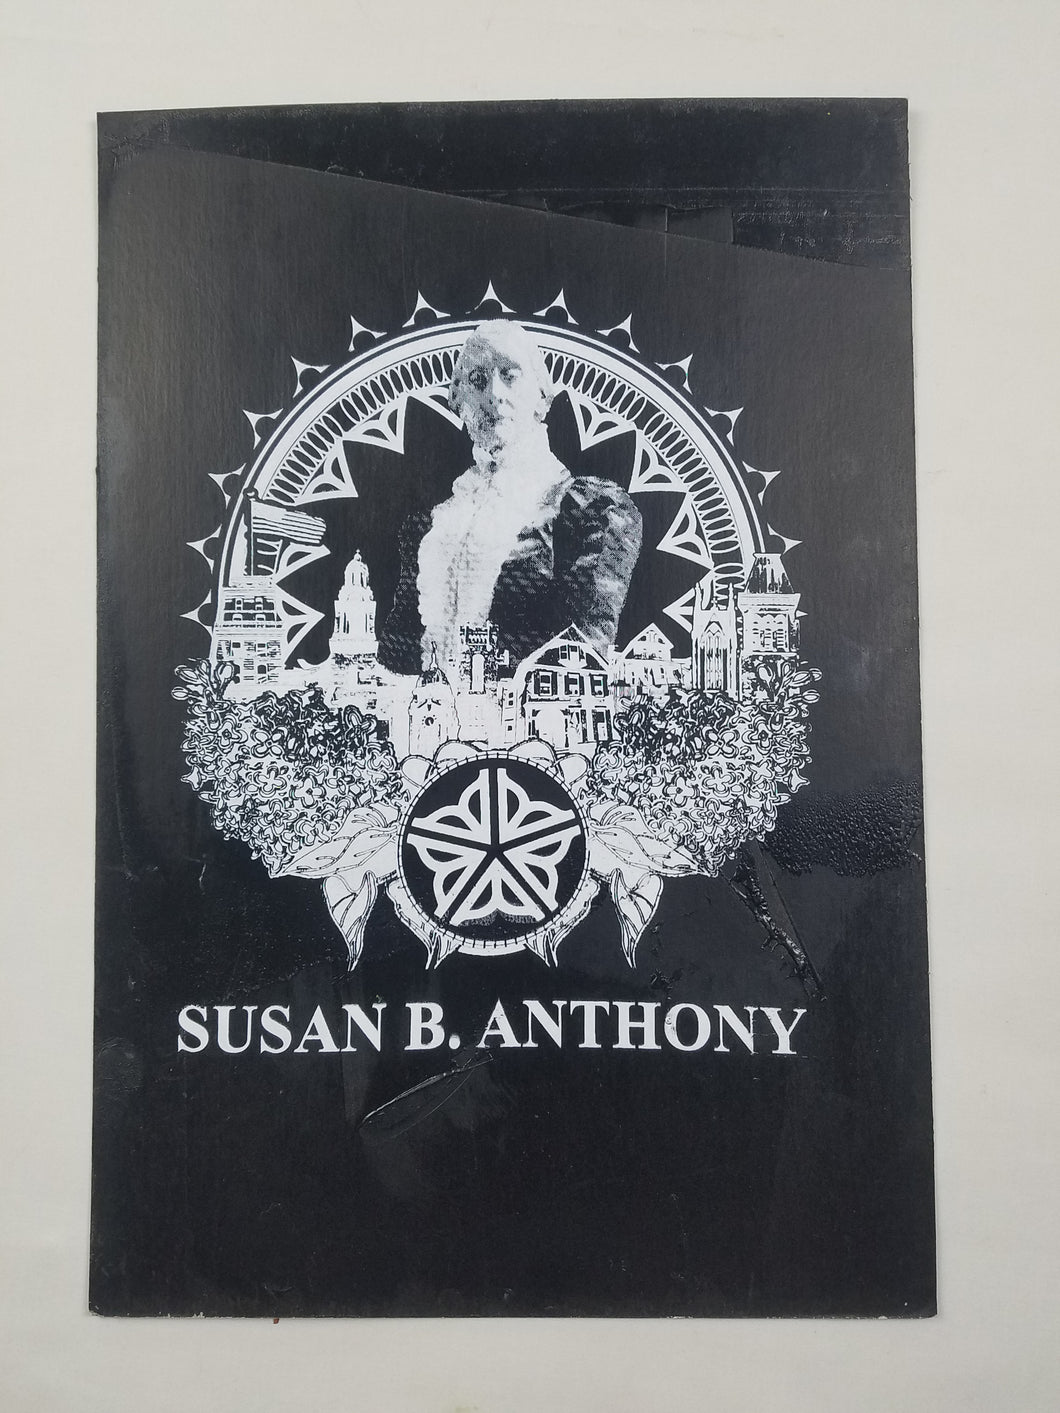 The Susan B. Anthony Screen Print Poster 13 X 19